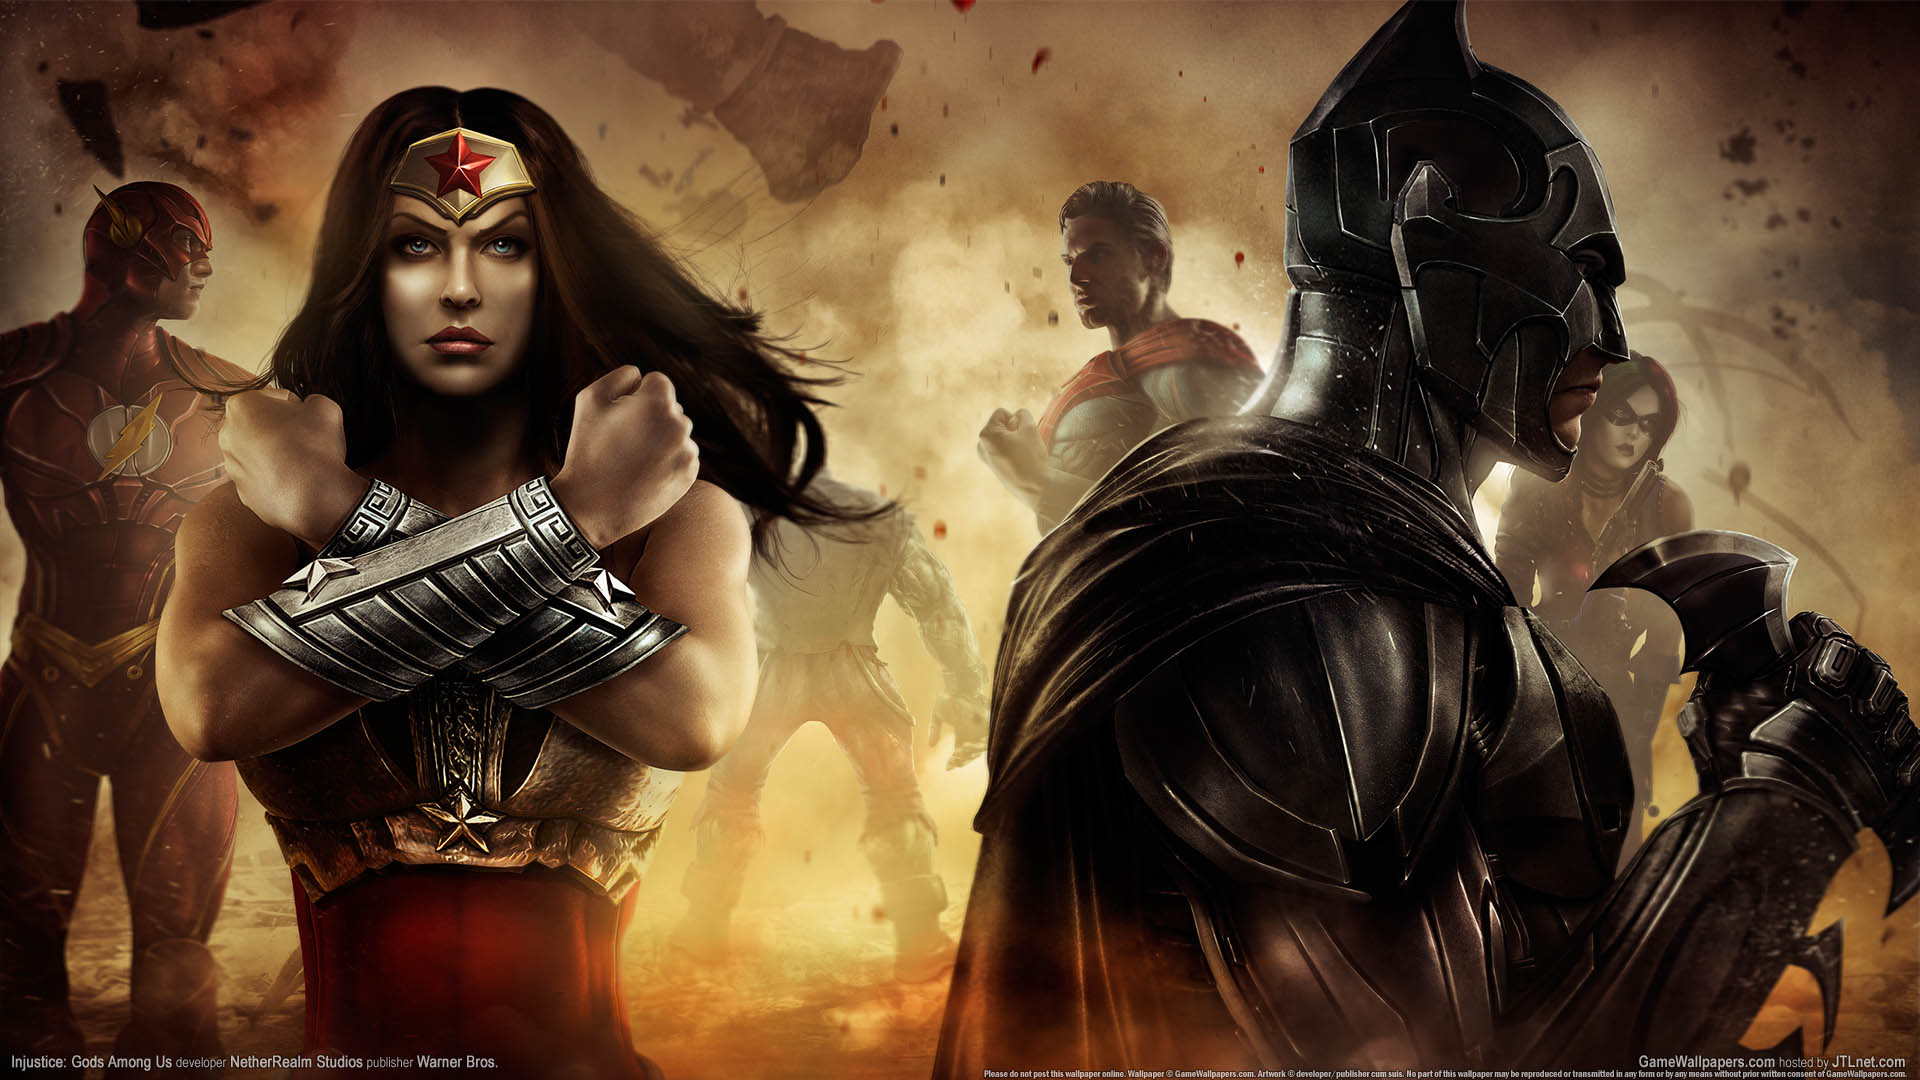 Gods among us wallpaper 01 1920x1080 injustice gods among us wallpaper 01 1920x1080 voltagebd Image collections